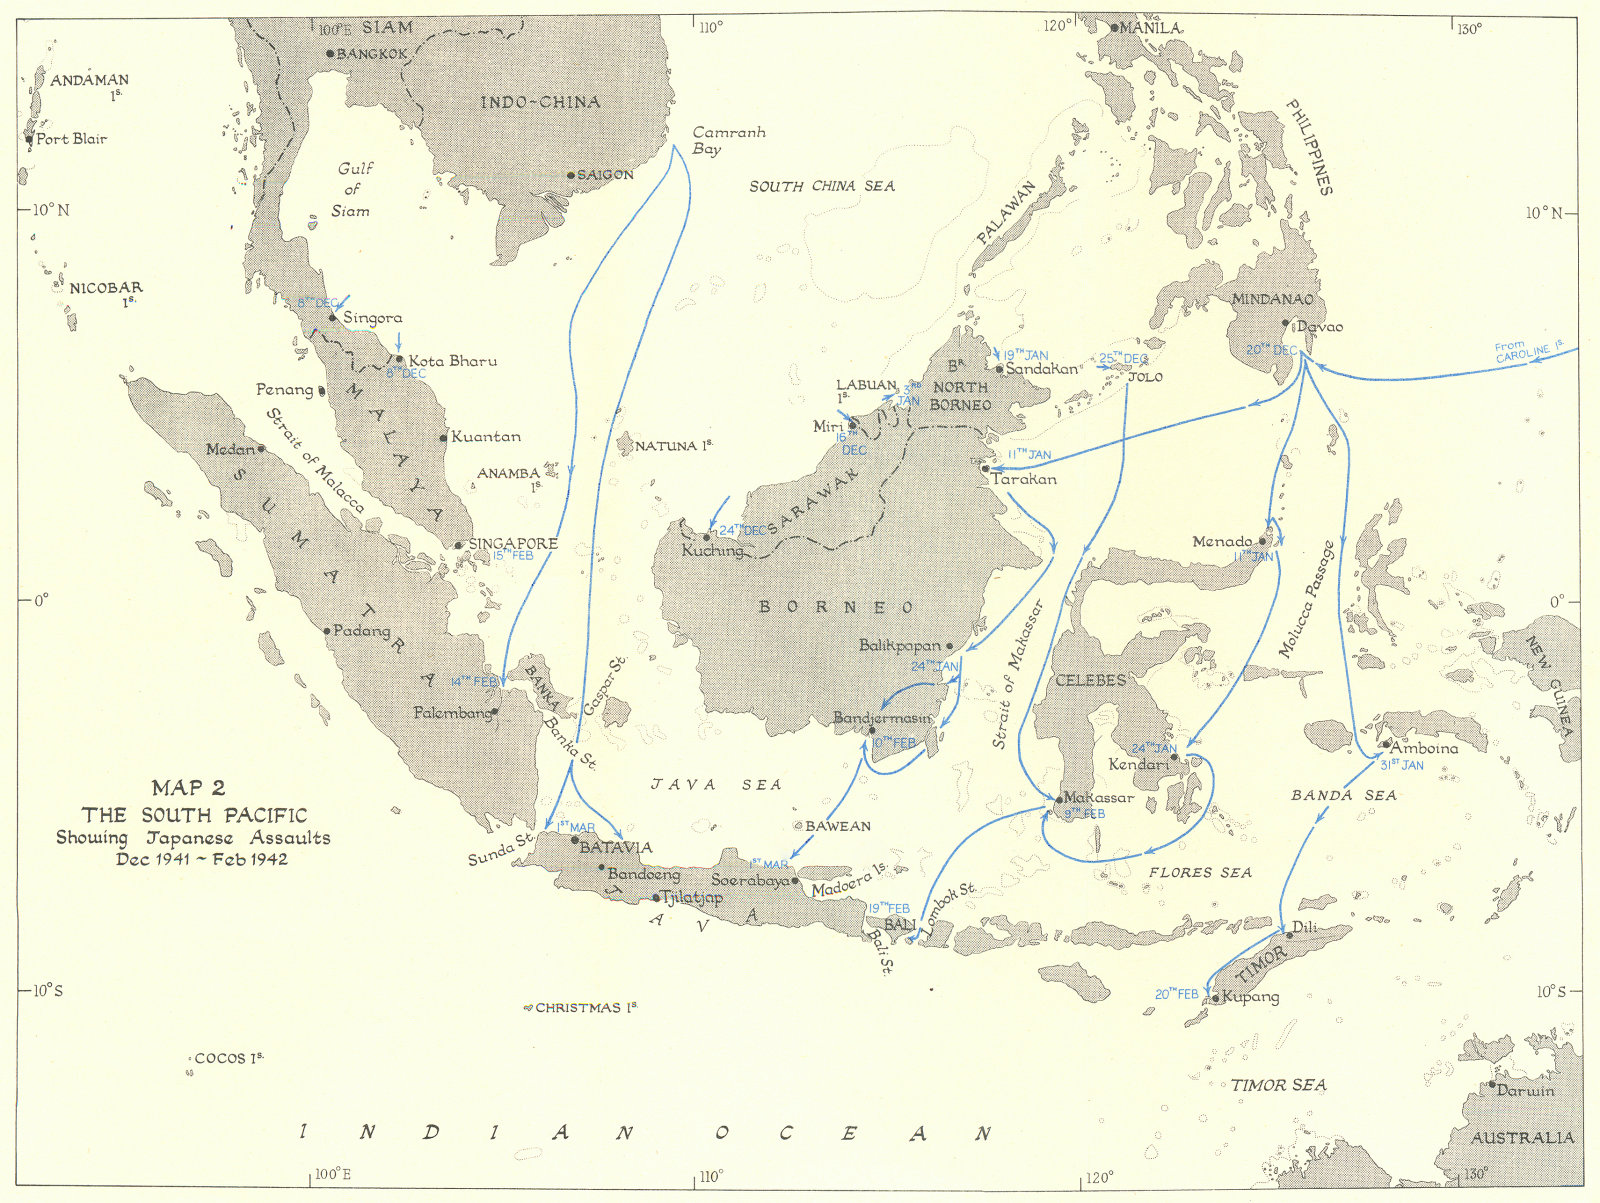 Associate Product INDONESIA. South Pacific showing Japanese assaults Dec 1941-Feb 1942 1956 map